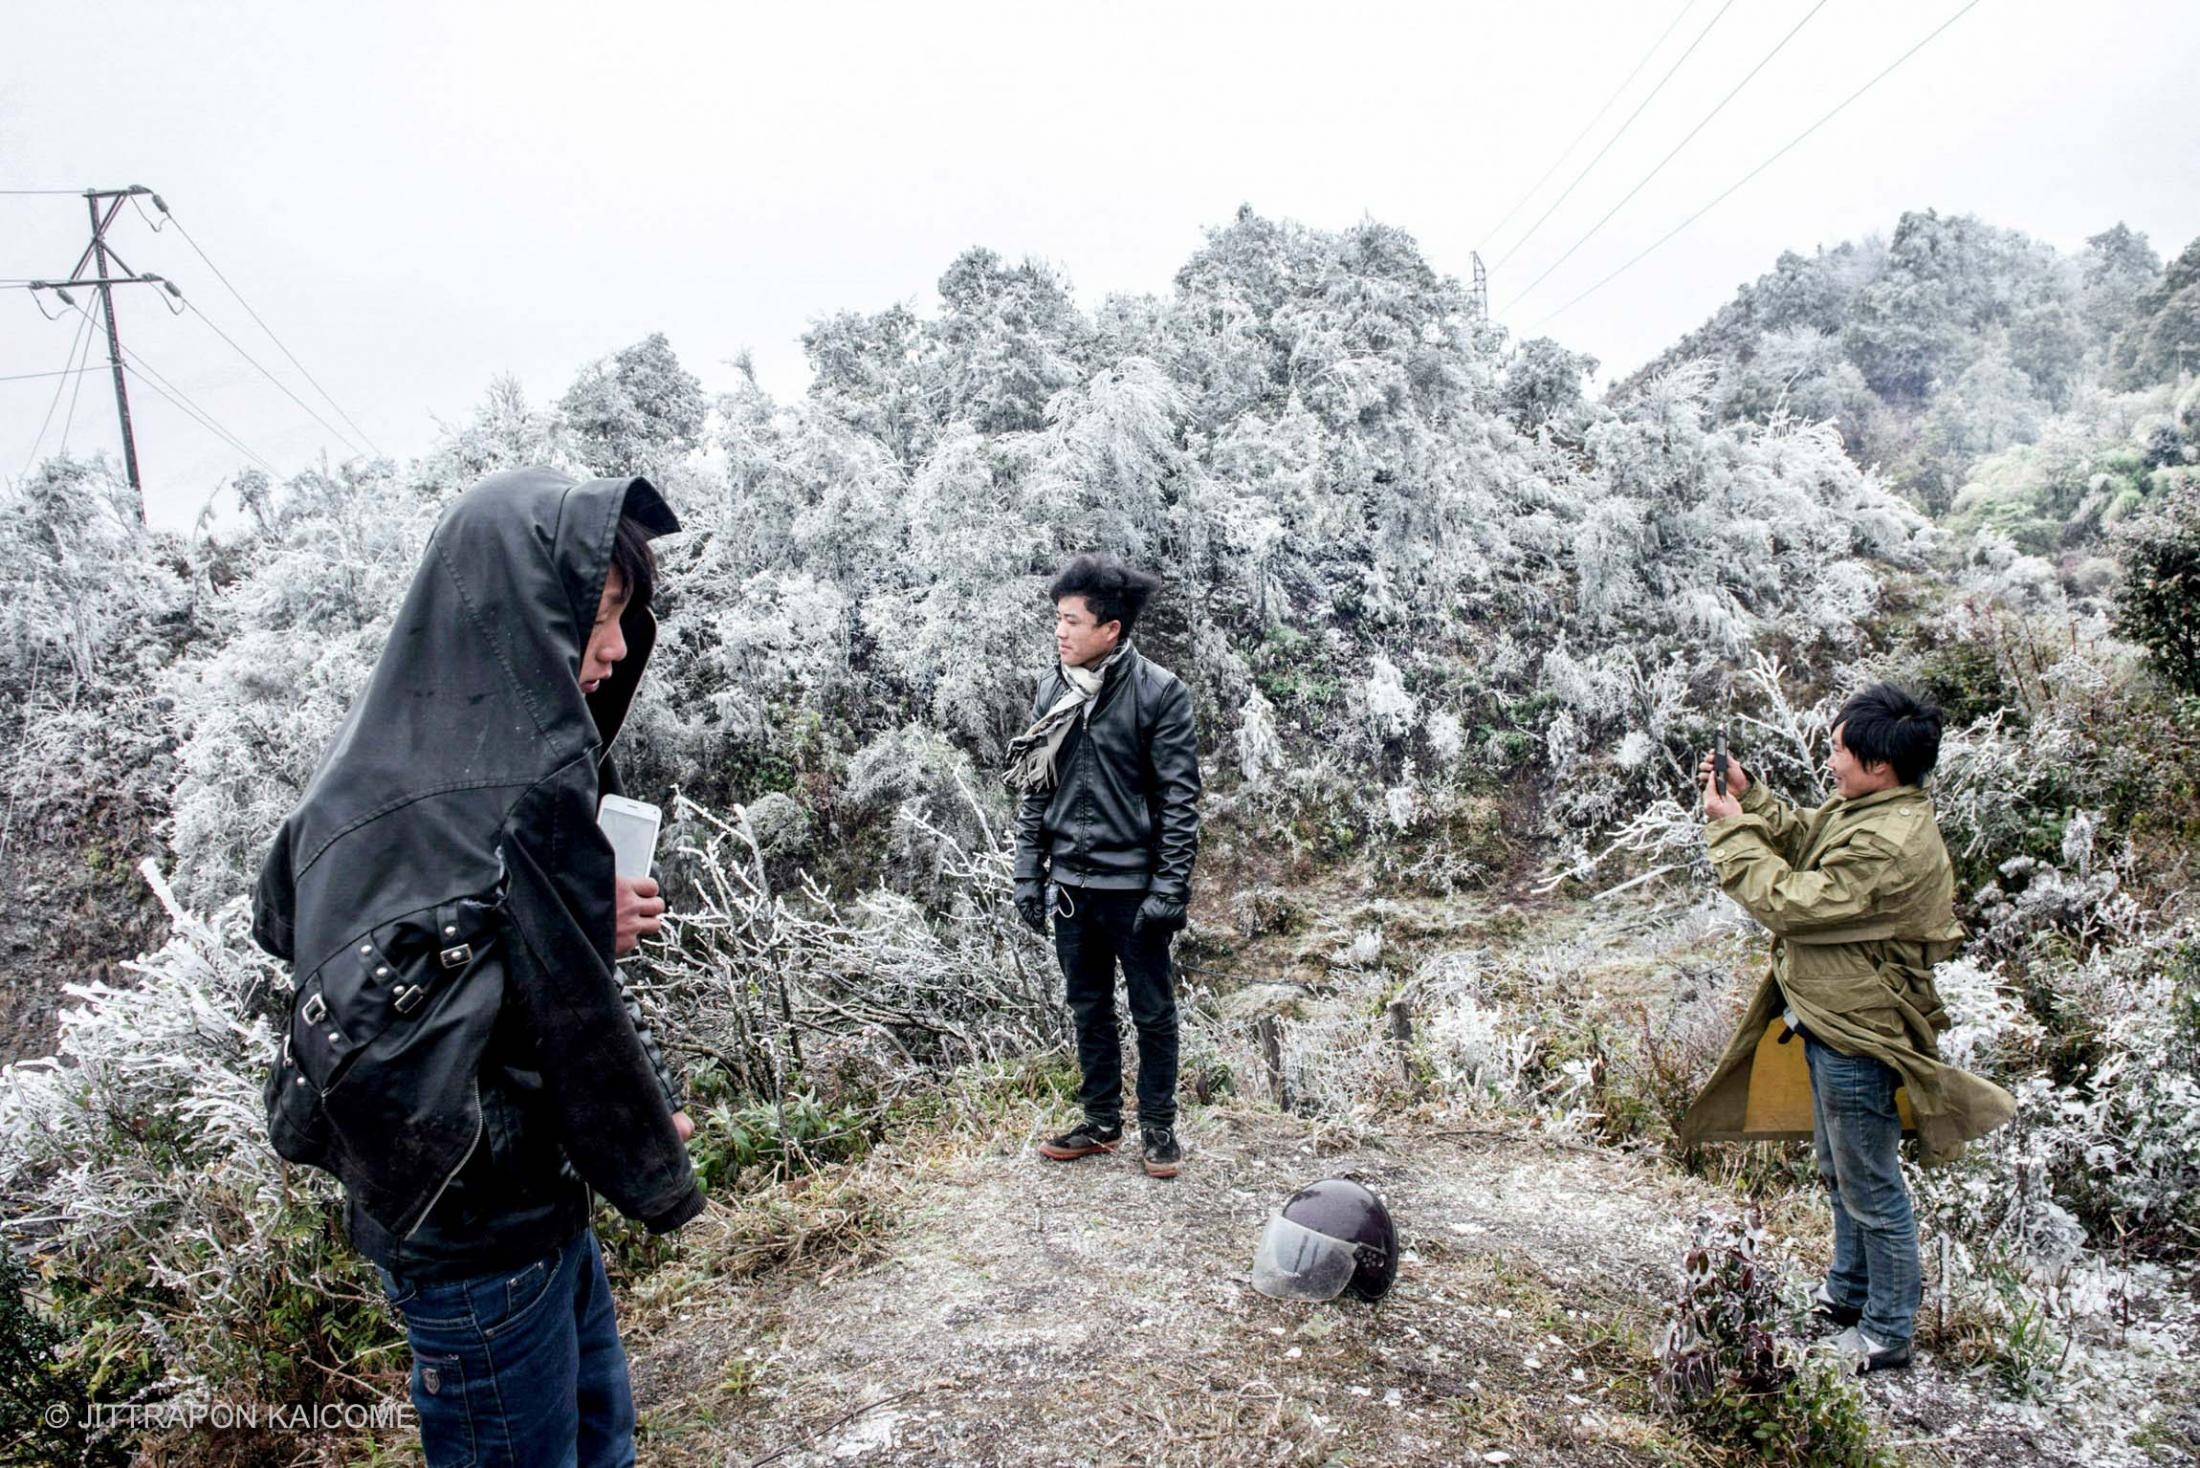 Northern Vietnam is experiencing the unusual cold wave that resulted in frost and snow on top of mountains. Local and foreign visitors are excited to come making traffic jams on mountain roads - Vietnam on February 05, 2018.